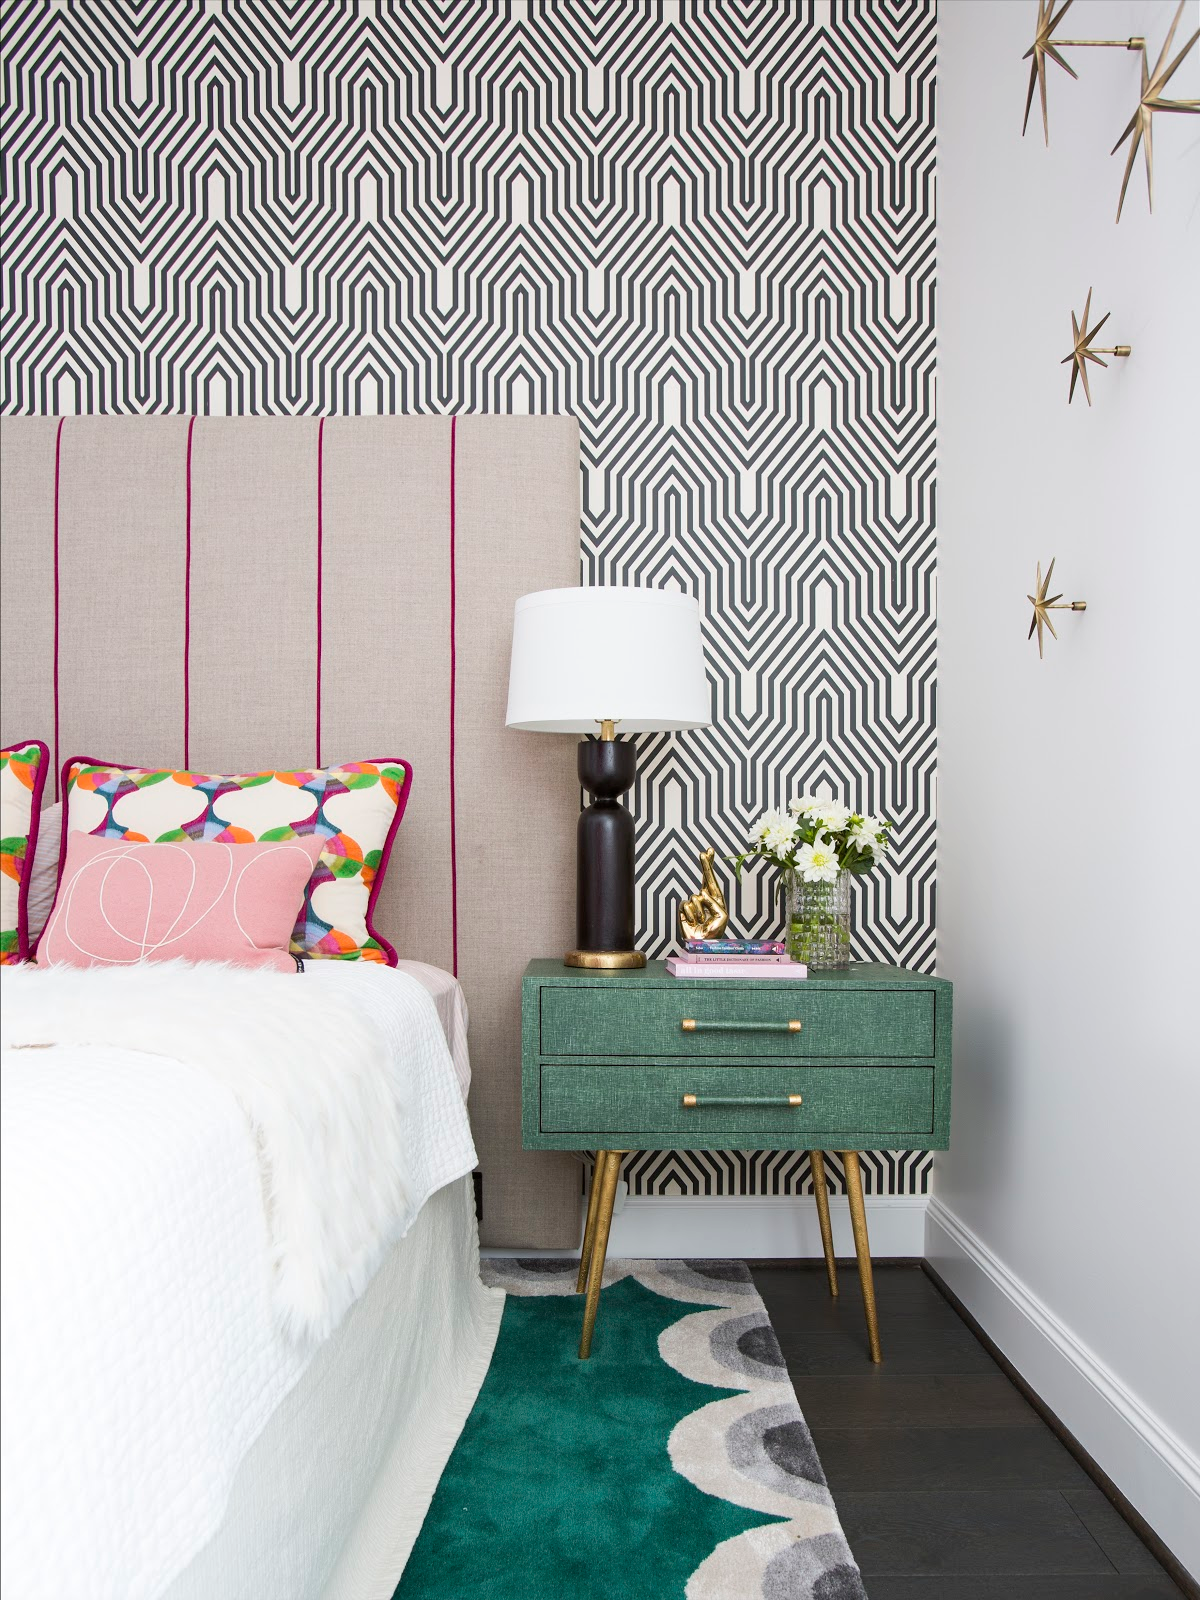 Geometric wallpaper covering as backdrop for custom pink stripe headboard in colorful guest bedroom - Dbh-biz.info Interior Design